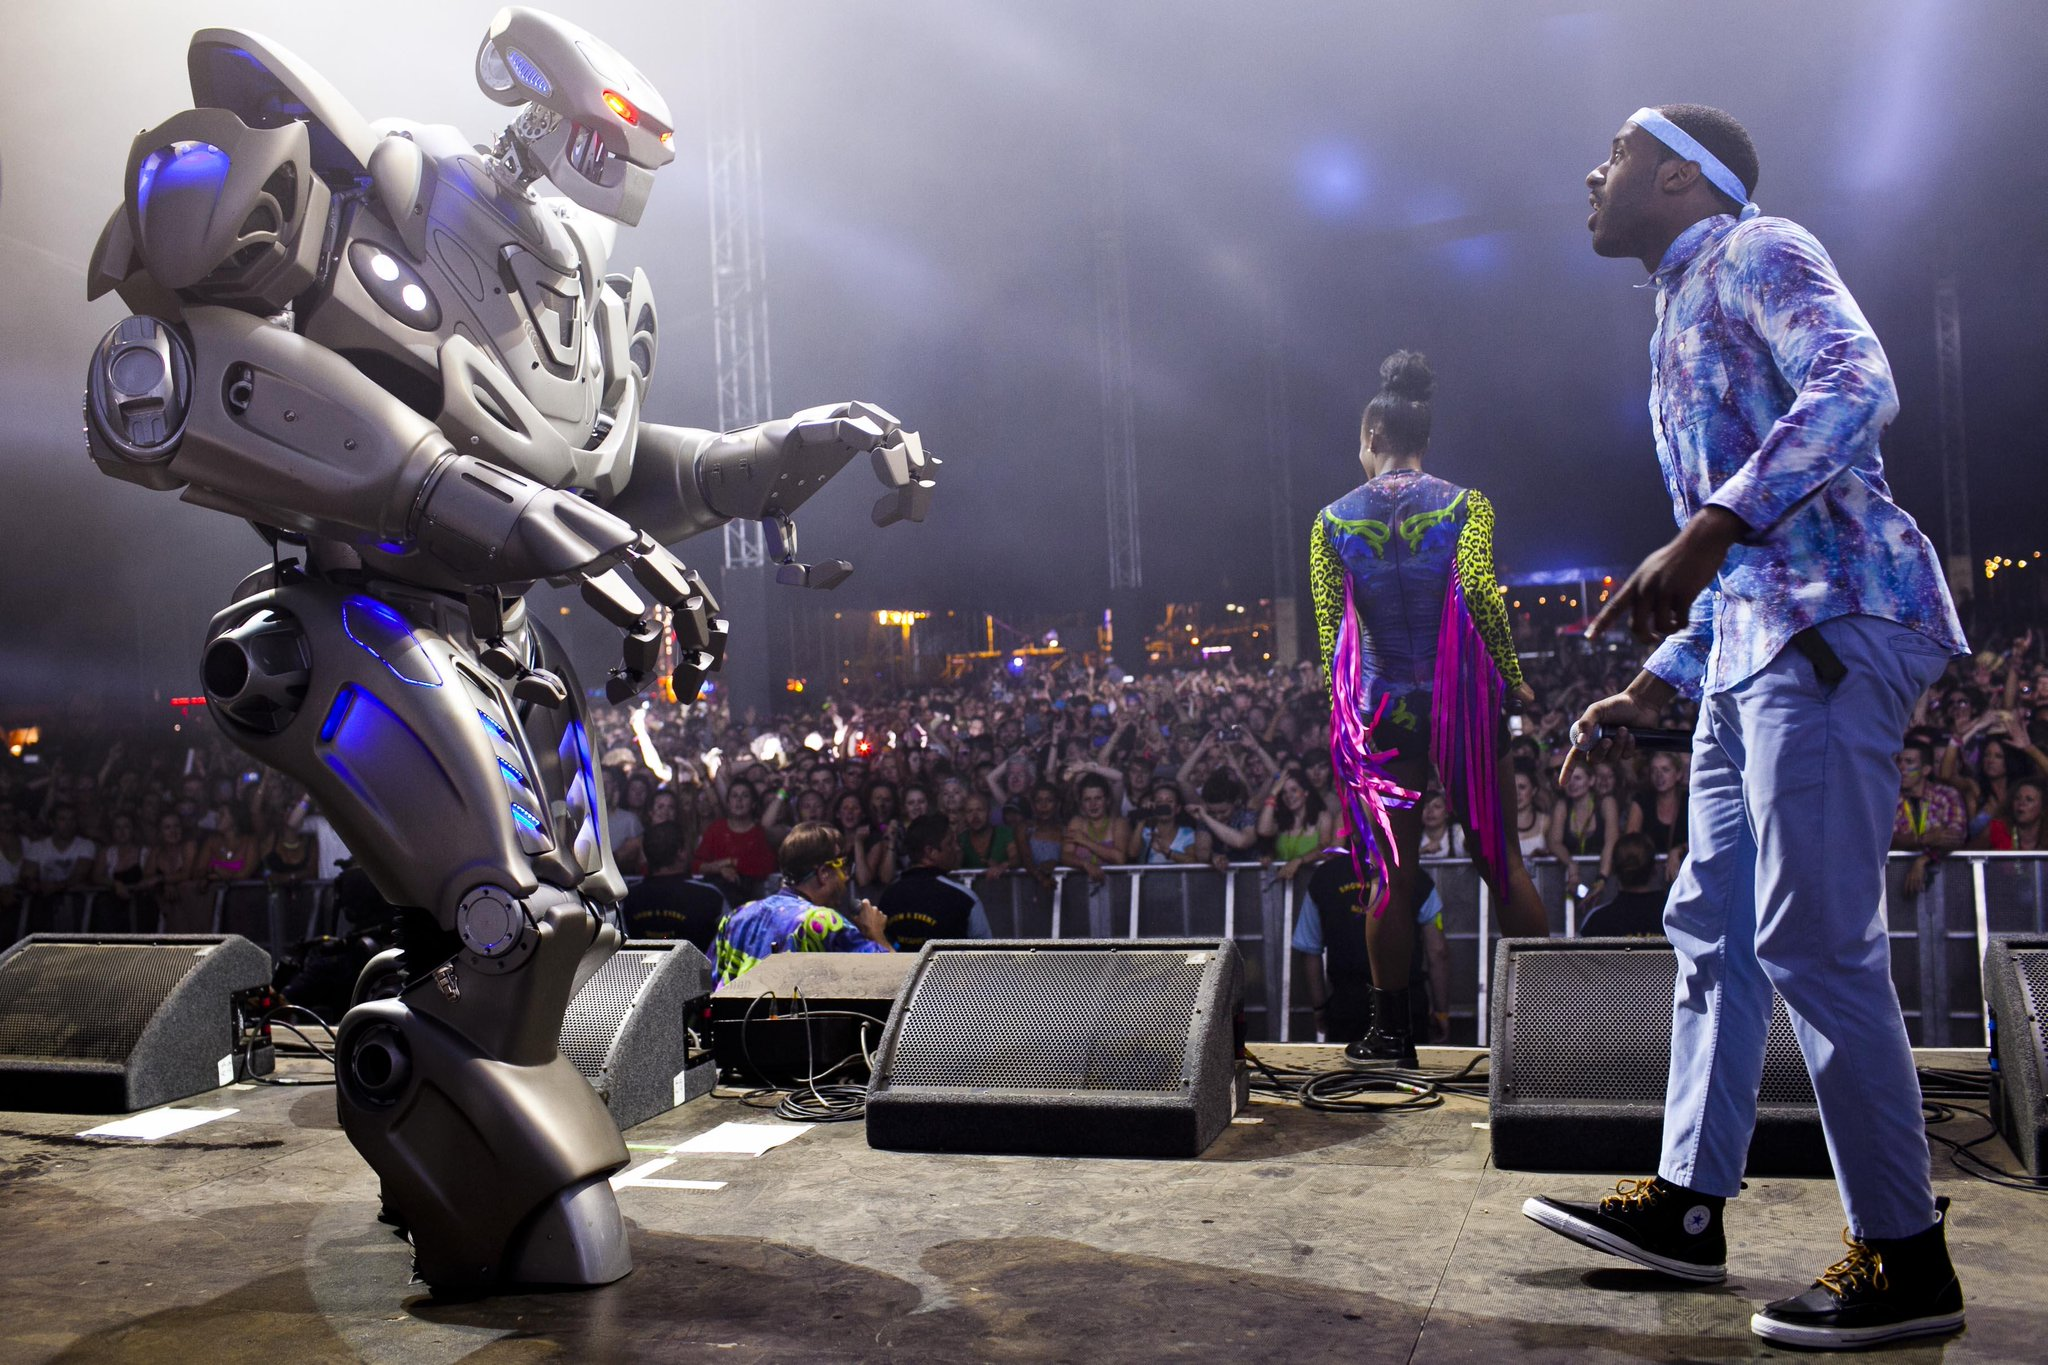 Basement Jaxx On Twitter Iamshakka Meets The Robot Vfestival With Thebasement Jaxx Http T Co Zevibecwky